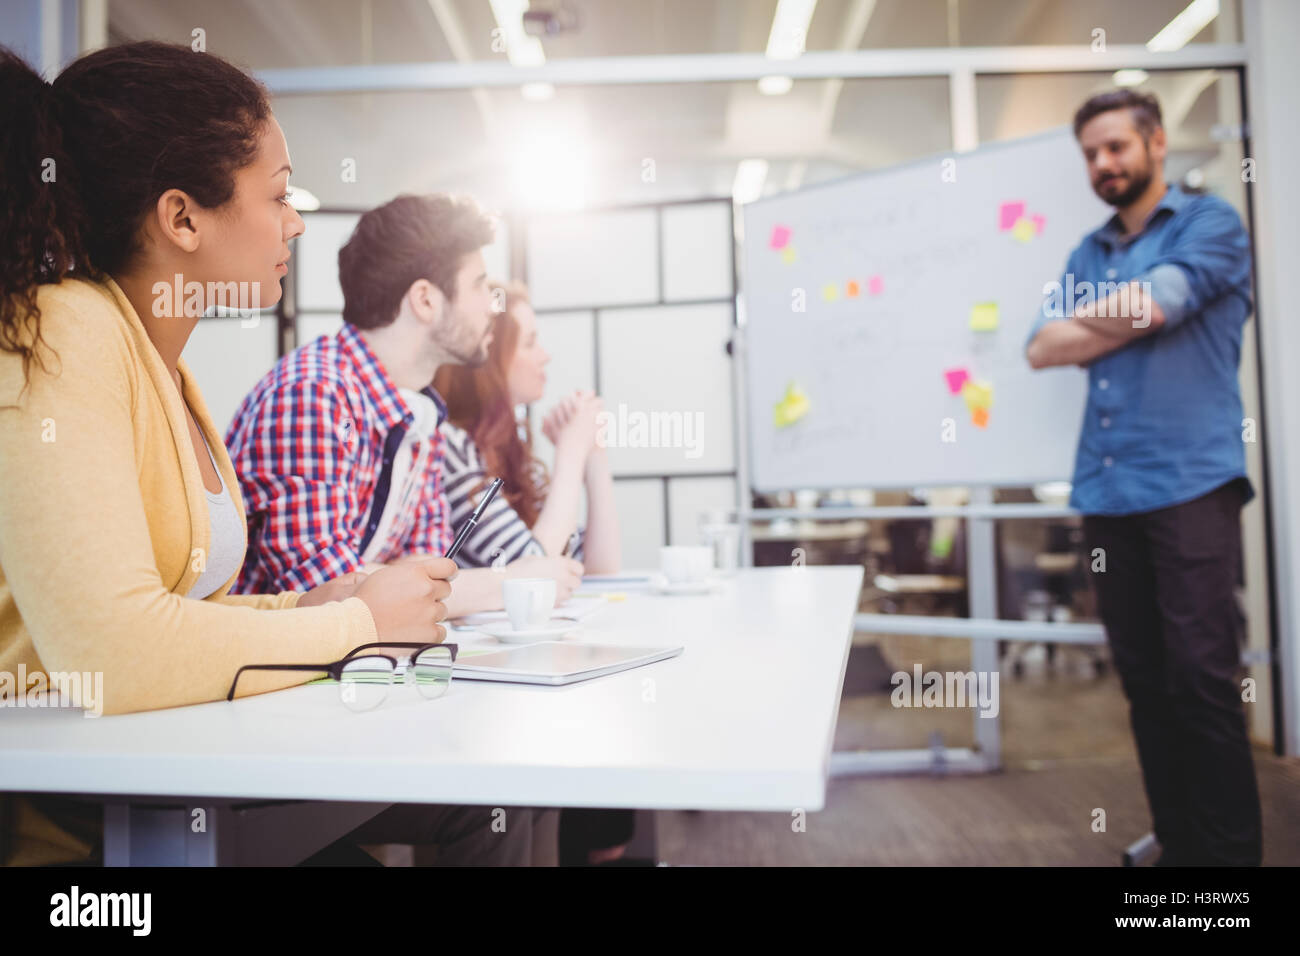 Executive standing in front of colleagues in meeting room at creative office - Stock Image